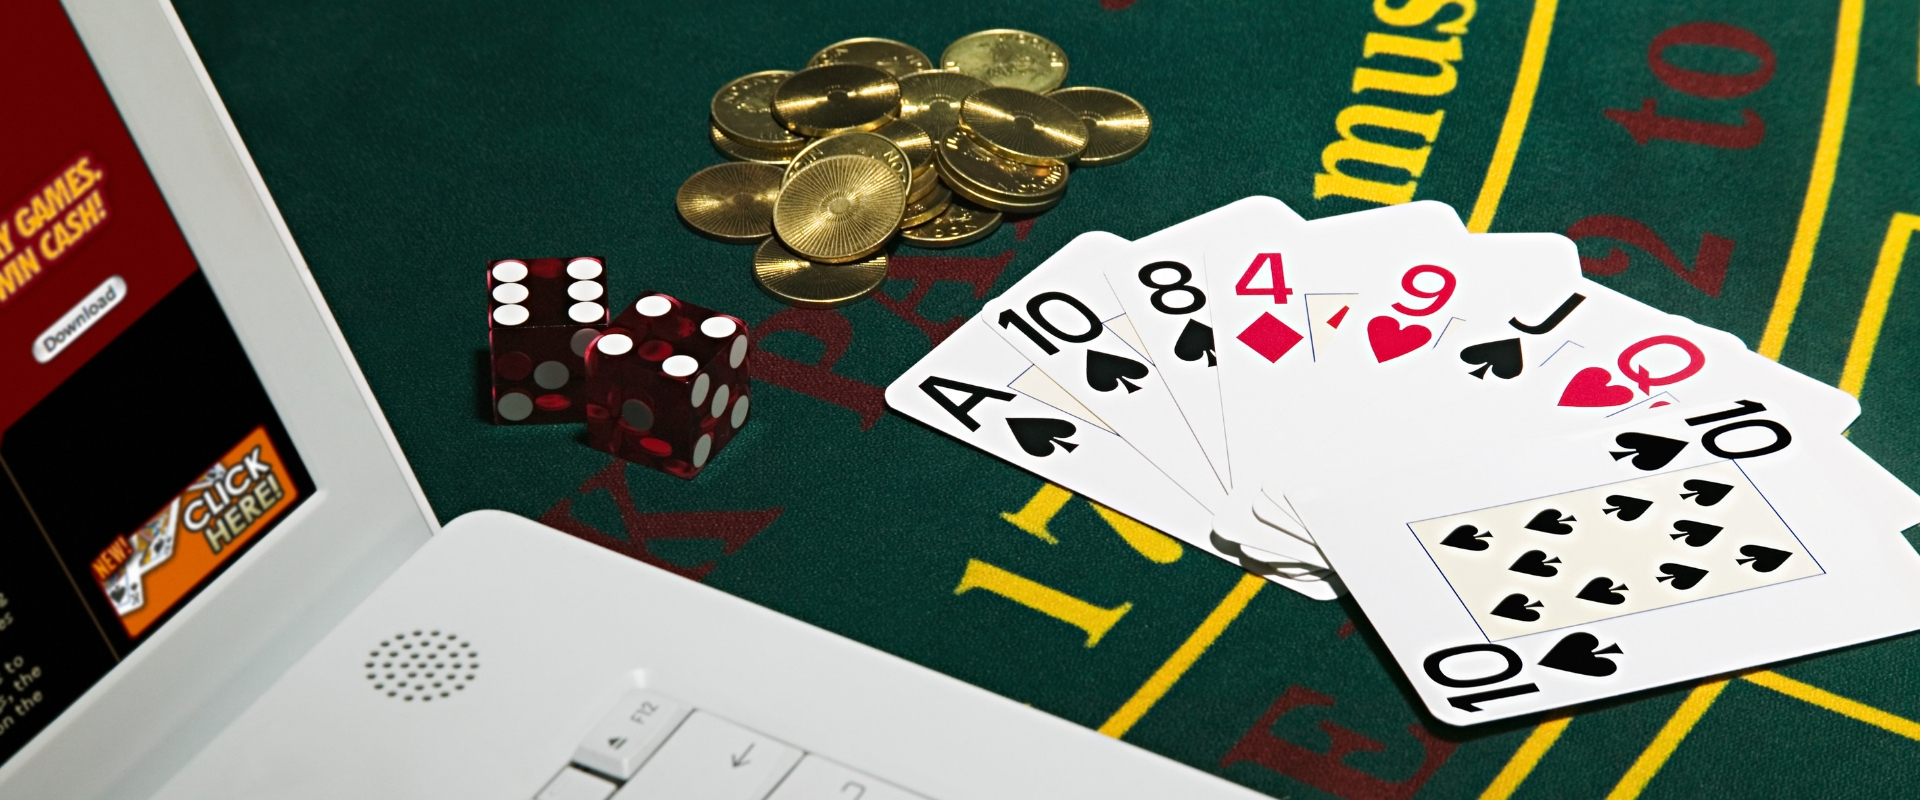 All about Real Money Casino games online in Belgium